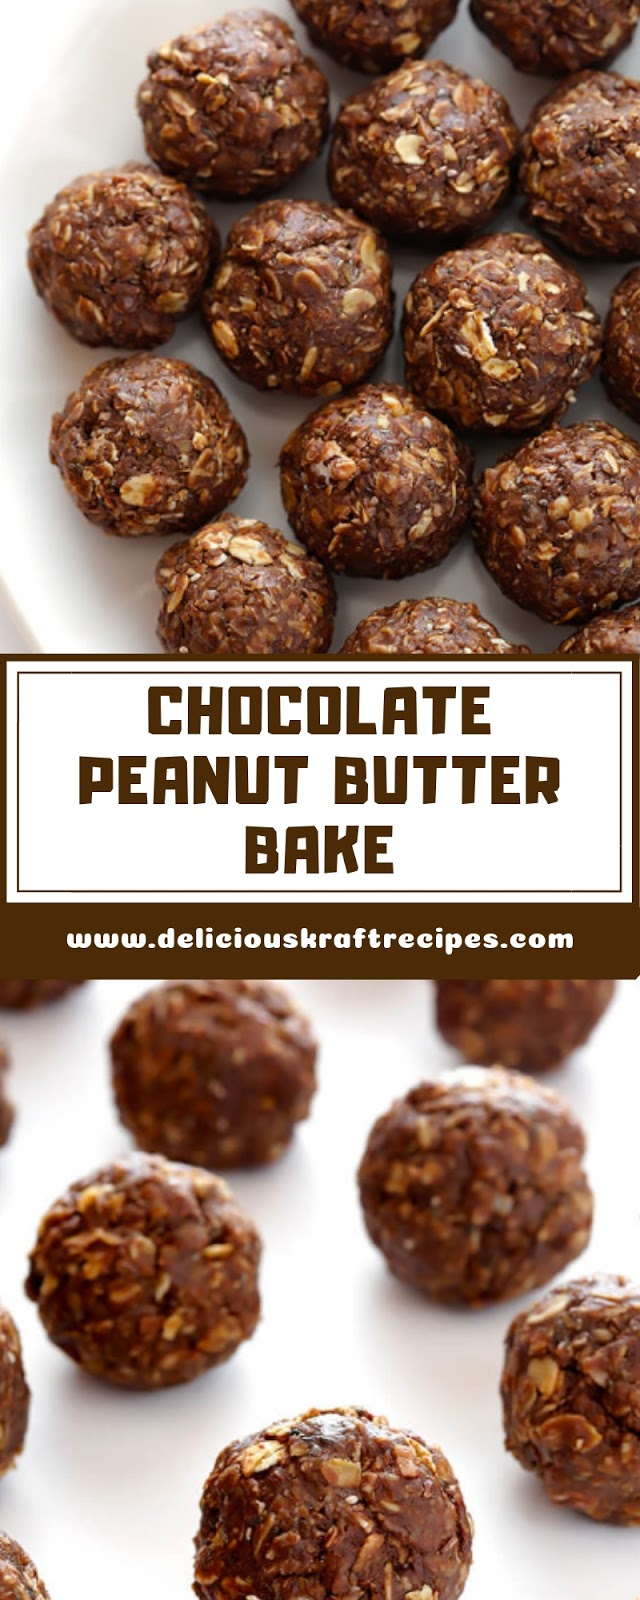 CHOCOLATE PEANUT BUTTER BAKE